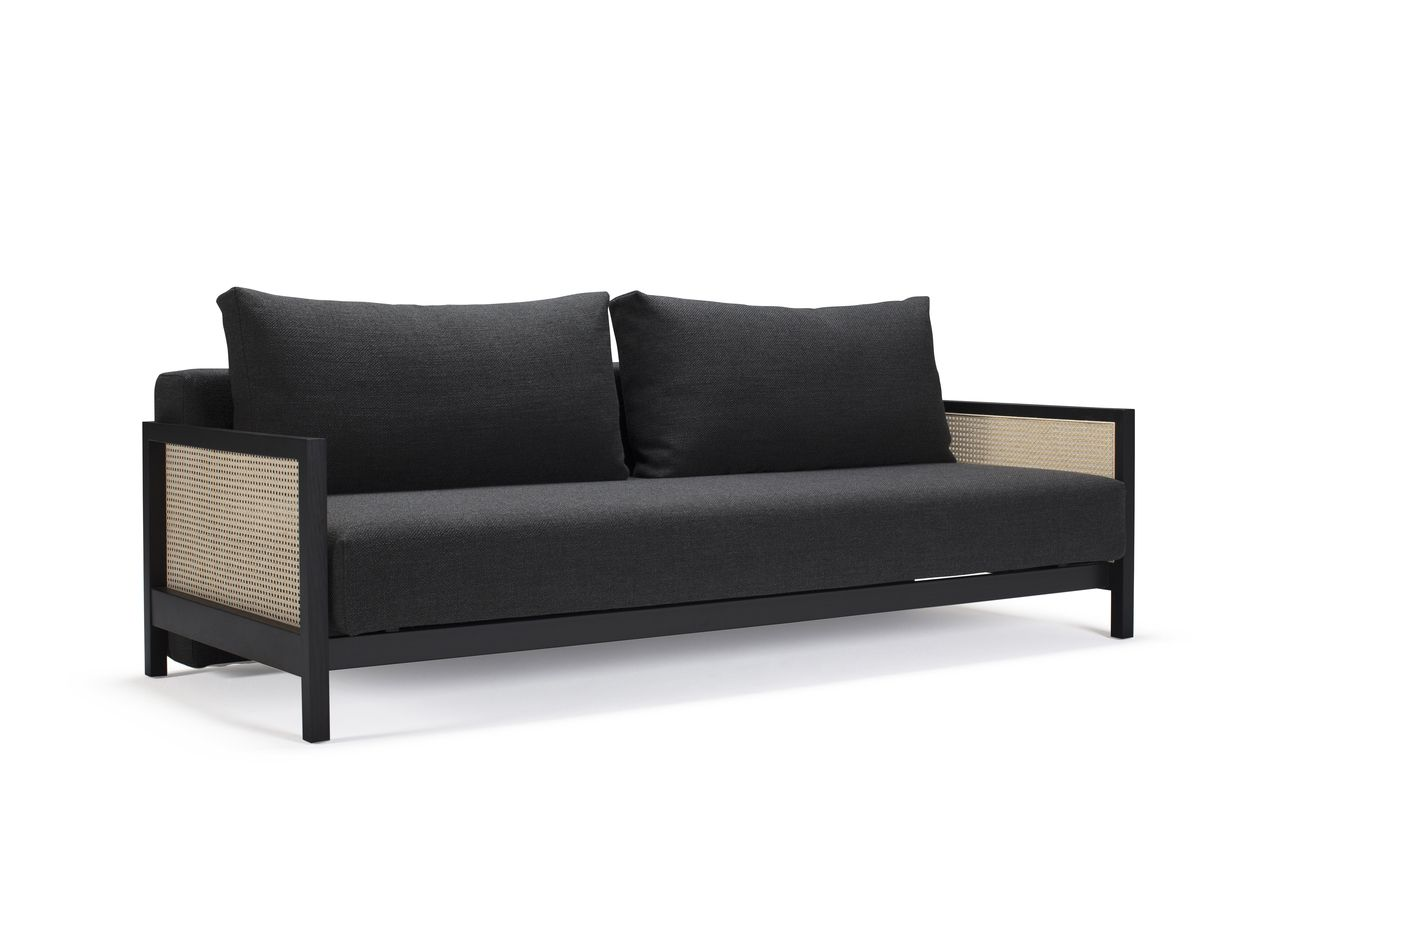 Narvi 140 X 200 Cm Schlafsofa Scandinavian Design Sofa 60s Furniture Furniture Design